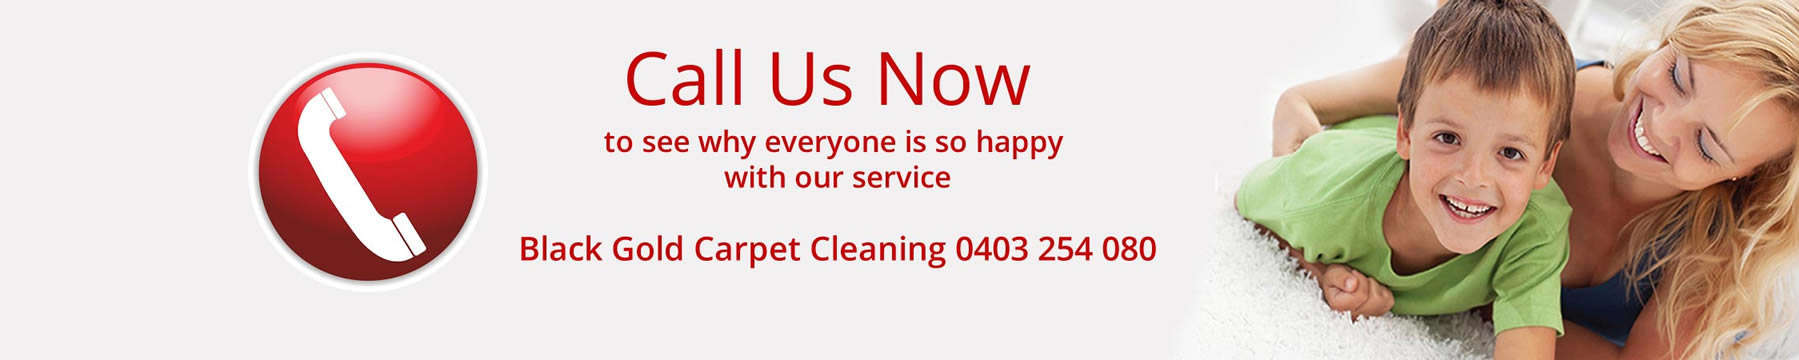 Carpet cleaning Melbourne service call to action